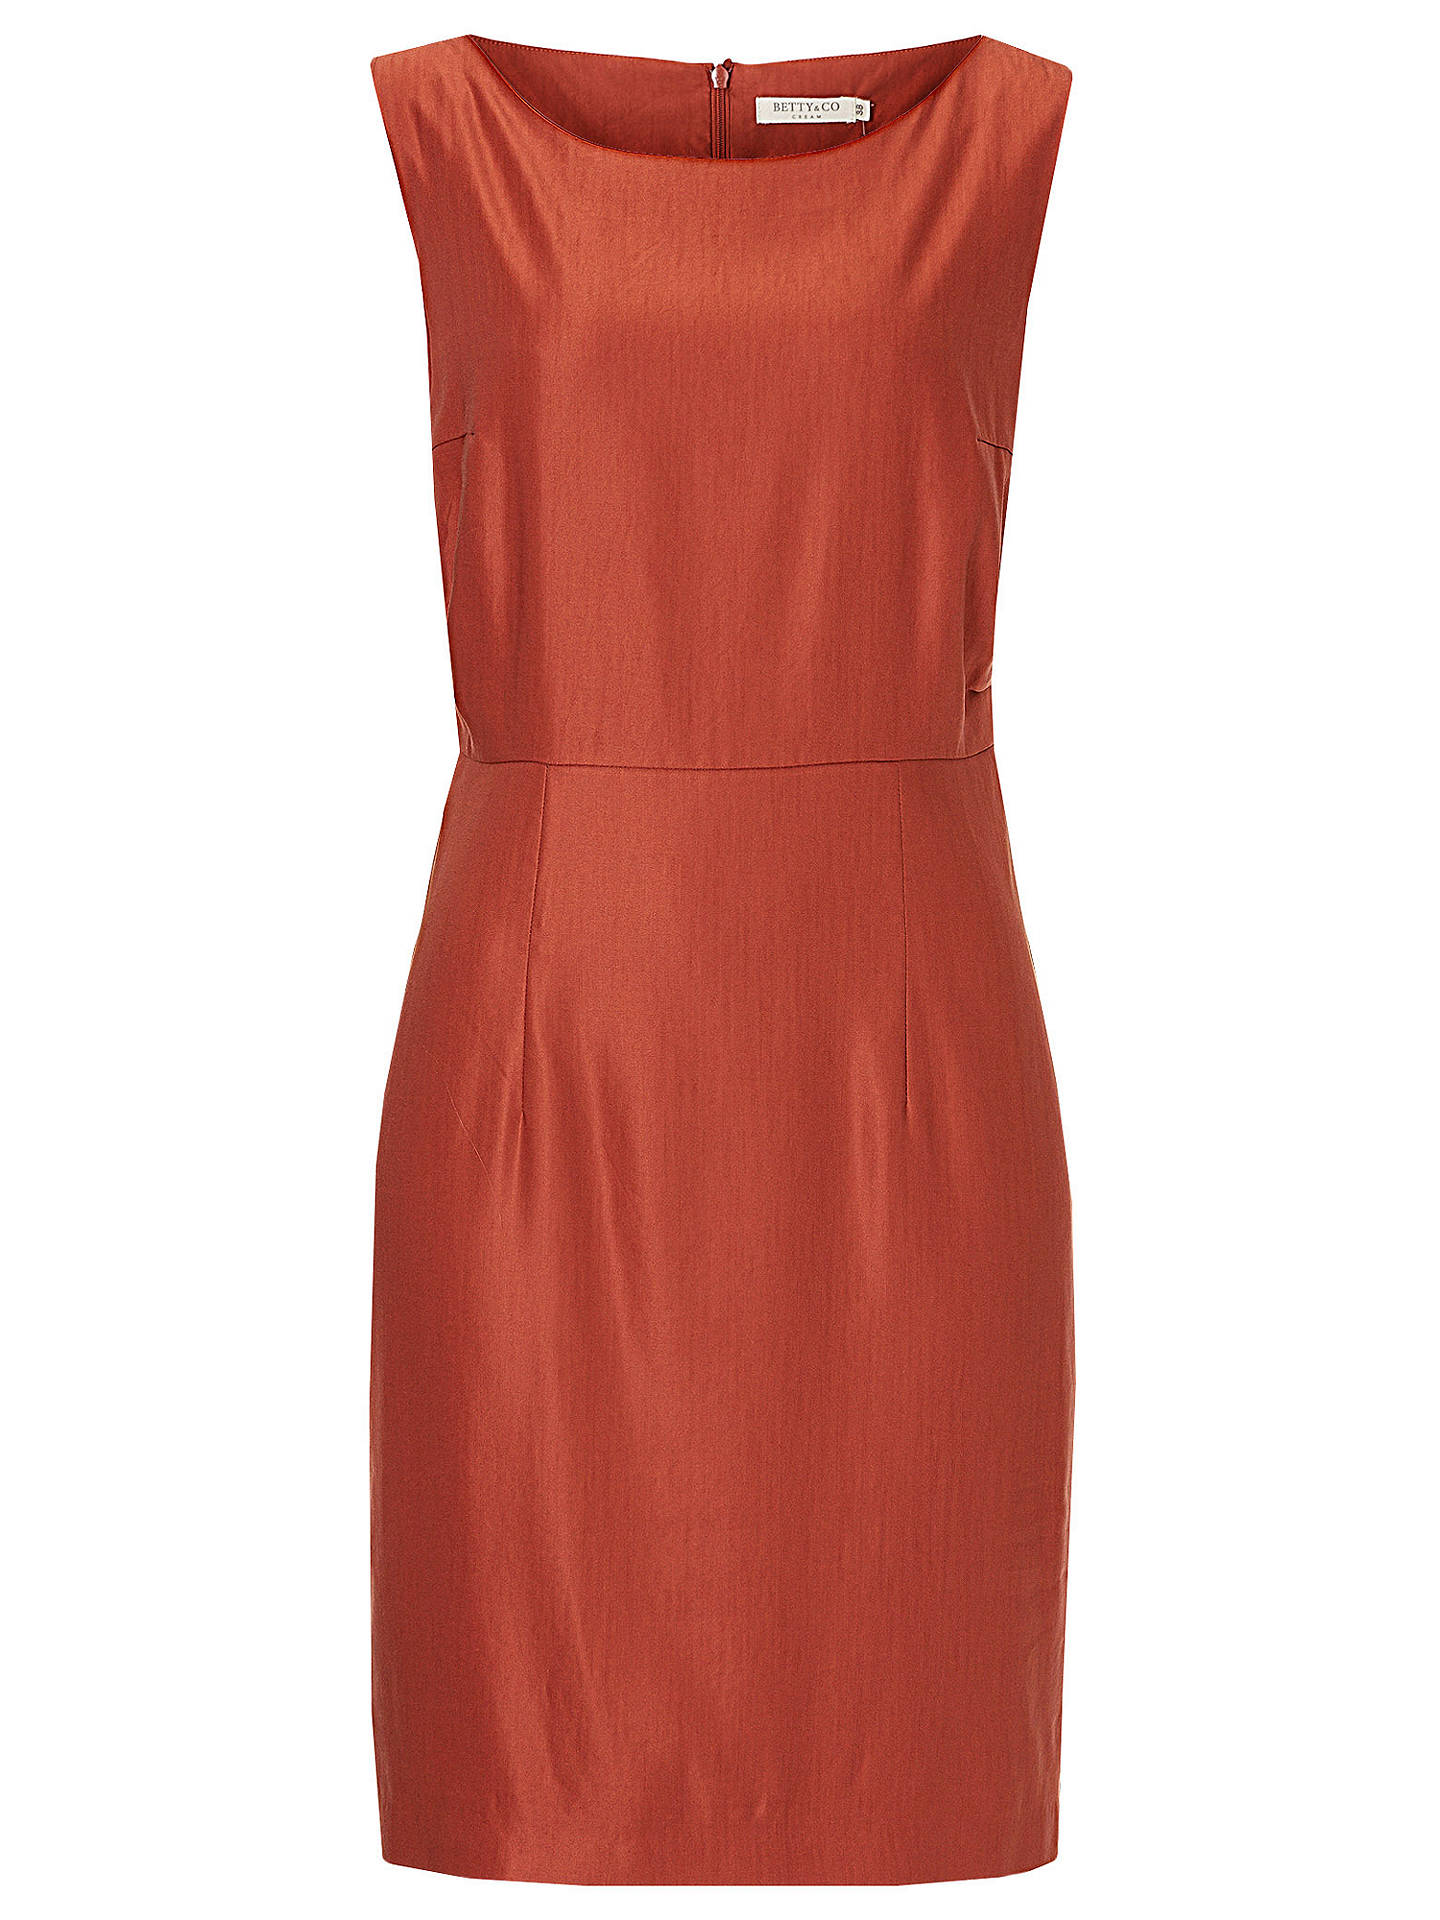 Buy Betty & Co. Satin Shift Dress, Etruscan Red, 10 Online at johnlewis.com